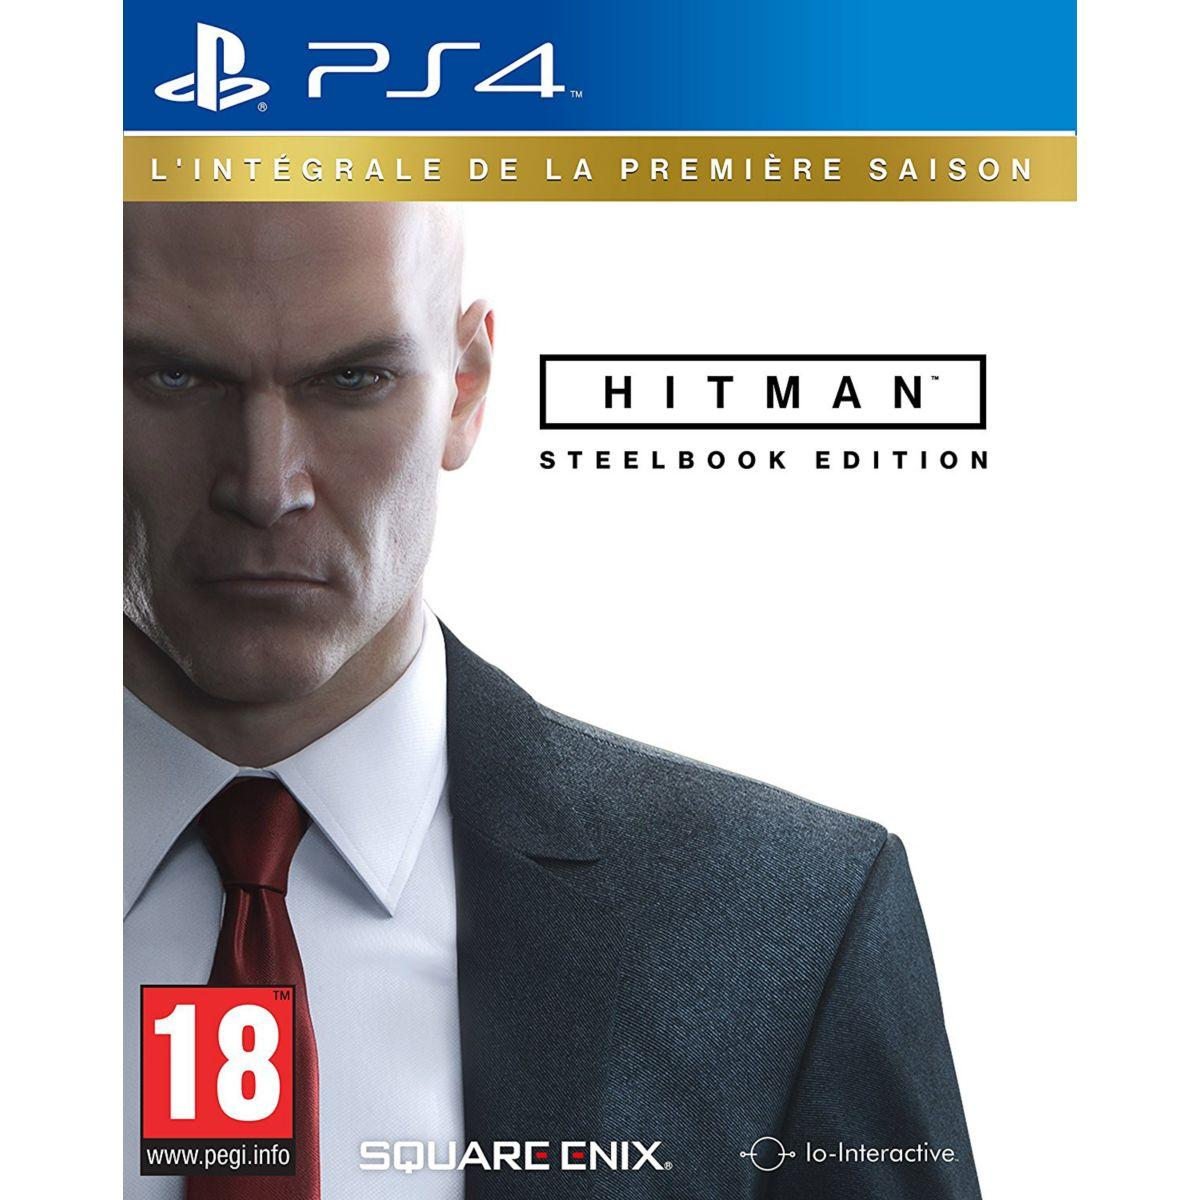 Jeu ps4 koch media hitman : edition comp - 2% de remise immédiate avec le code : cool2 (photo)